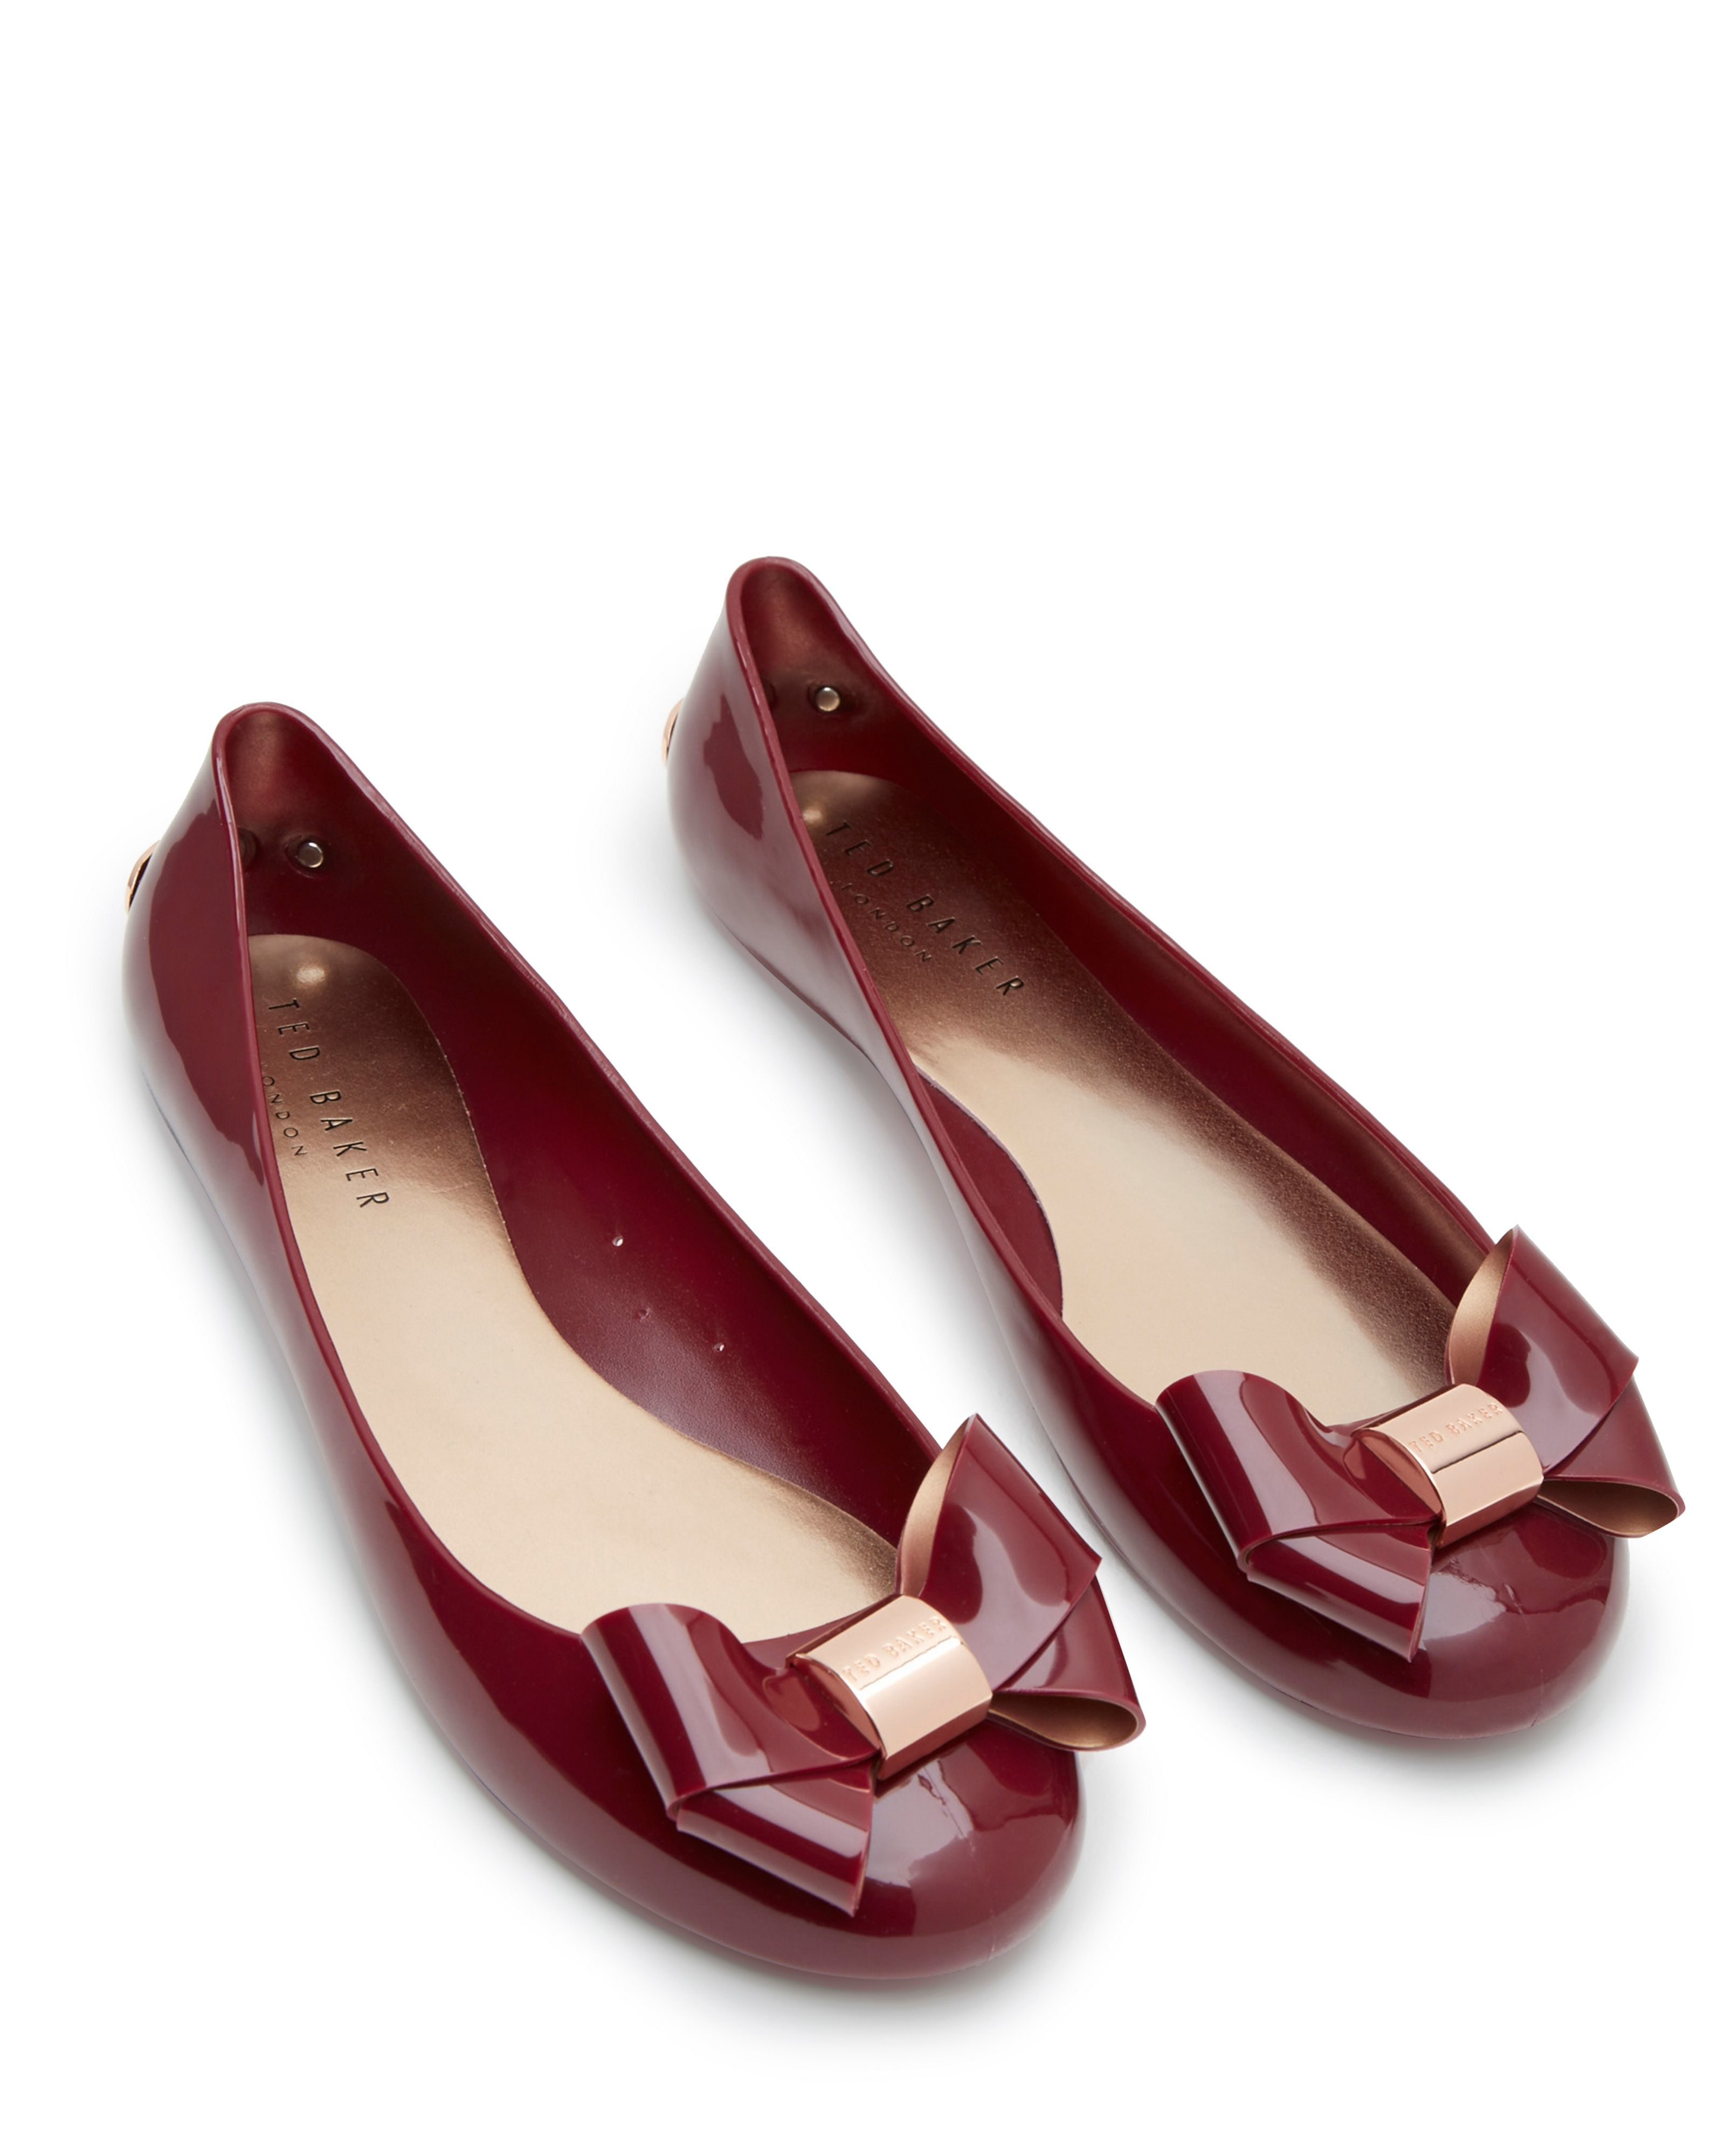 2c96684d053d7 Ted Baker Jelly Flats Related Keywords   Suggestions - Ted Baker ...